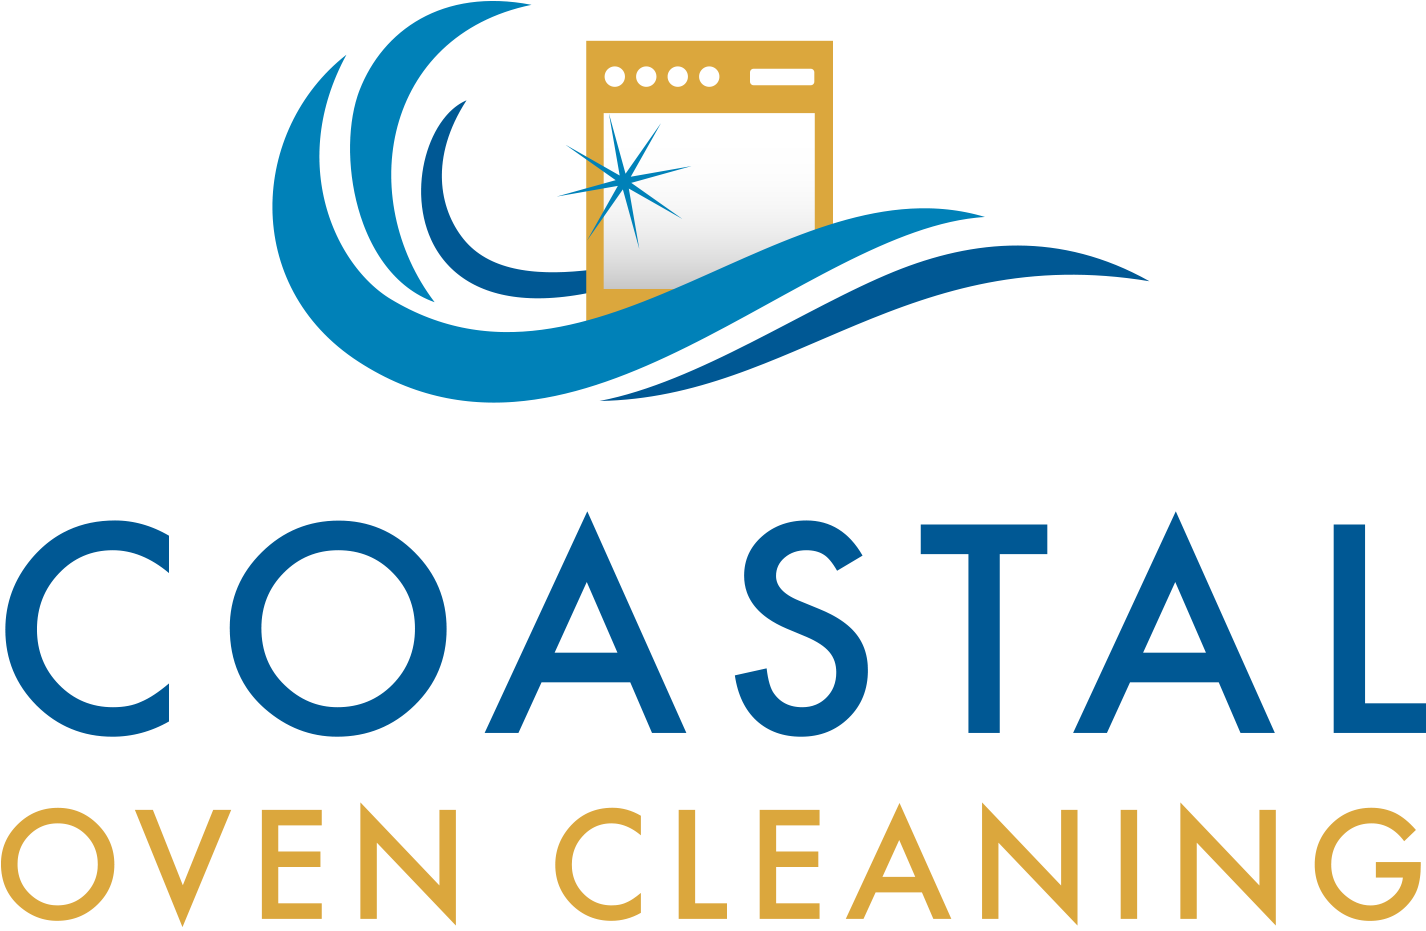 Coastal Oven Cleaning